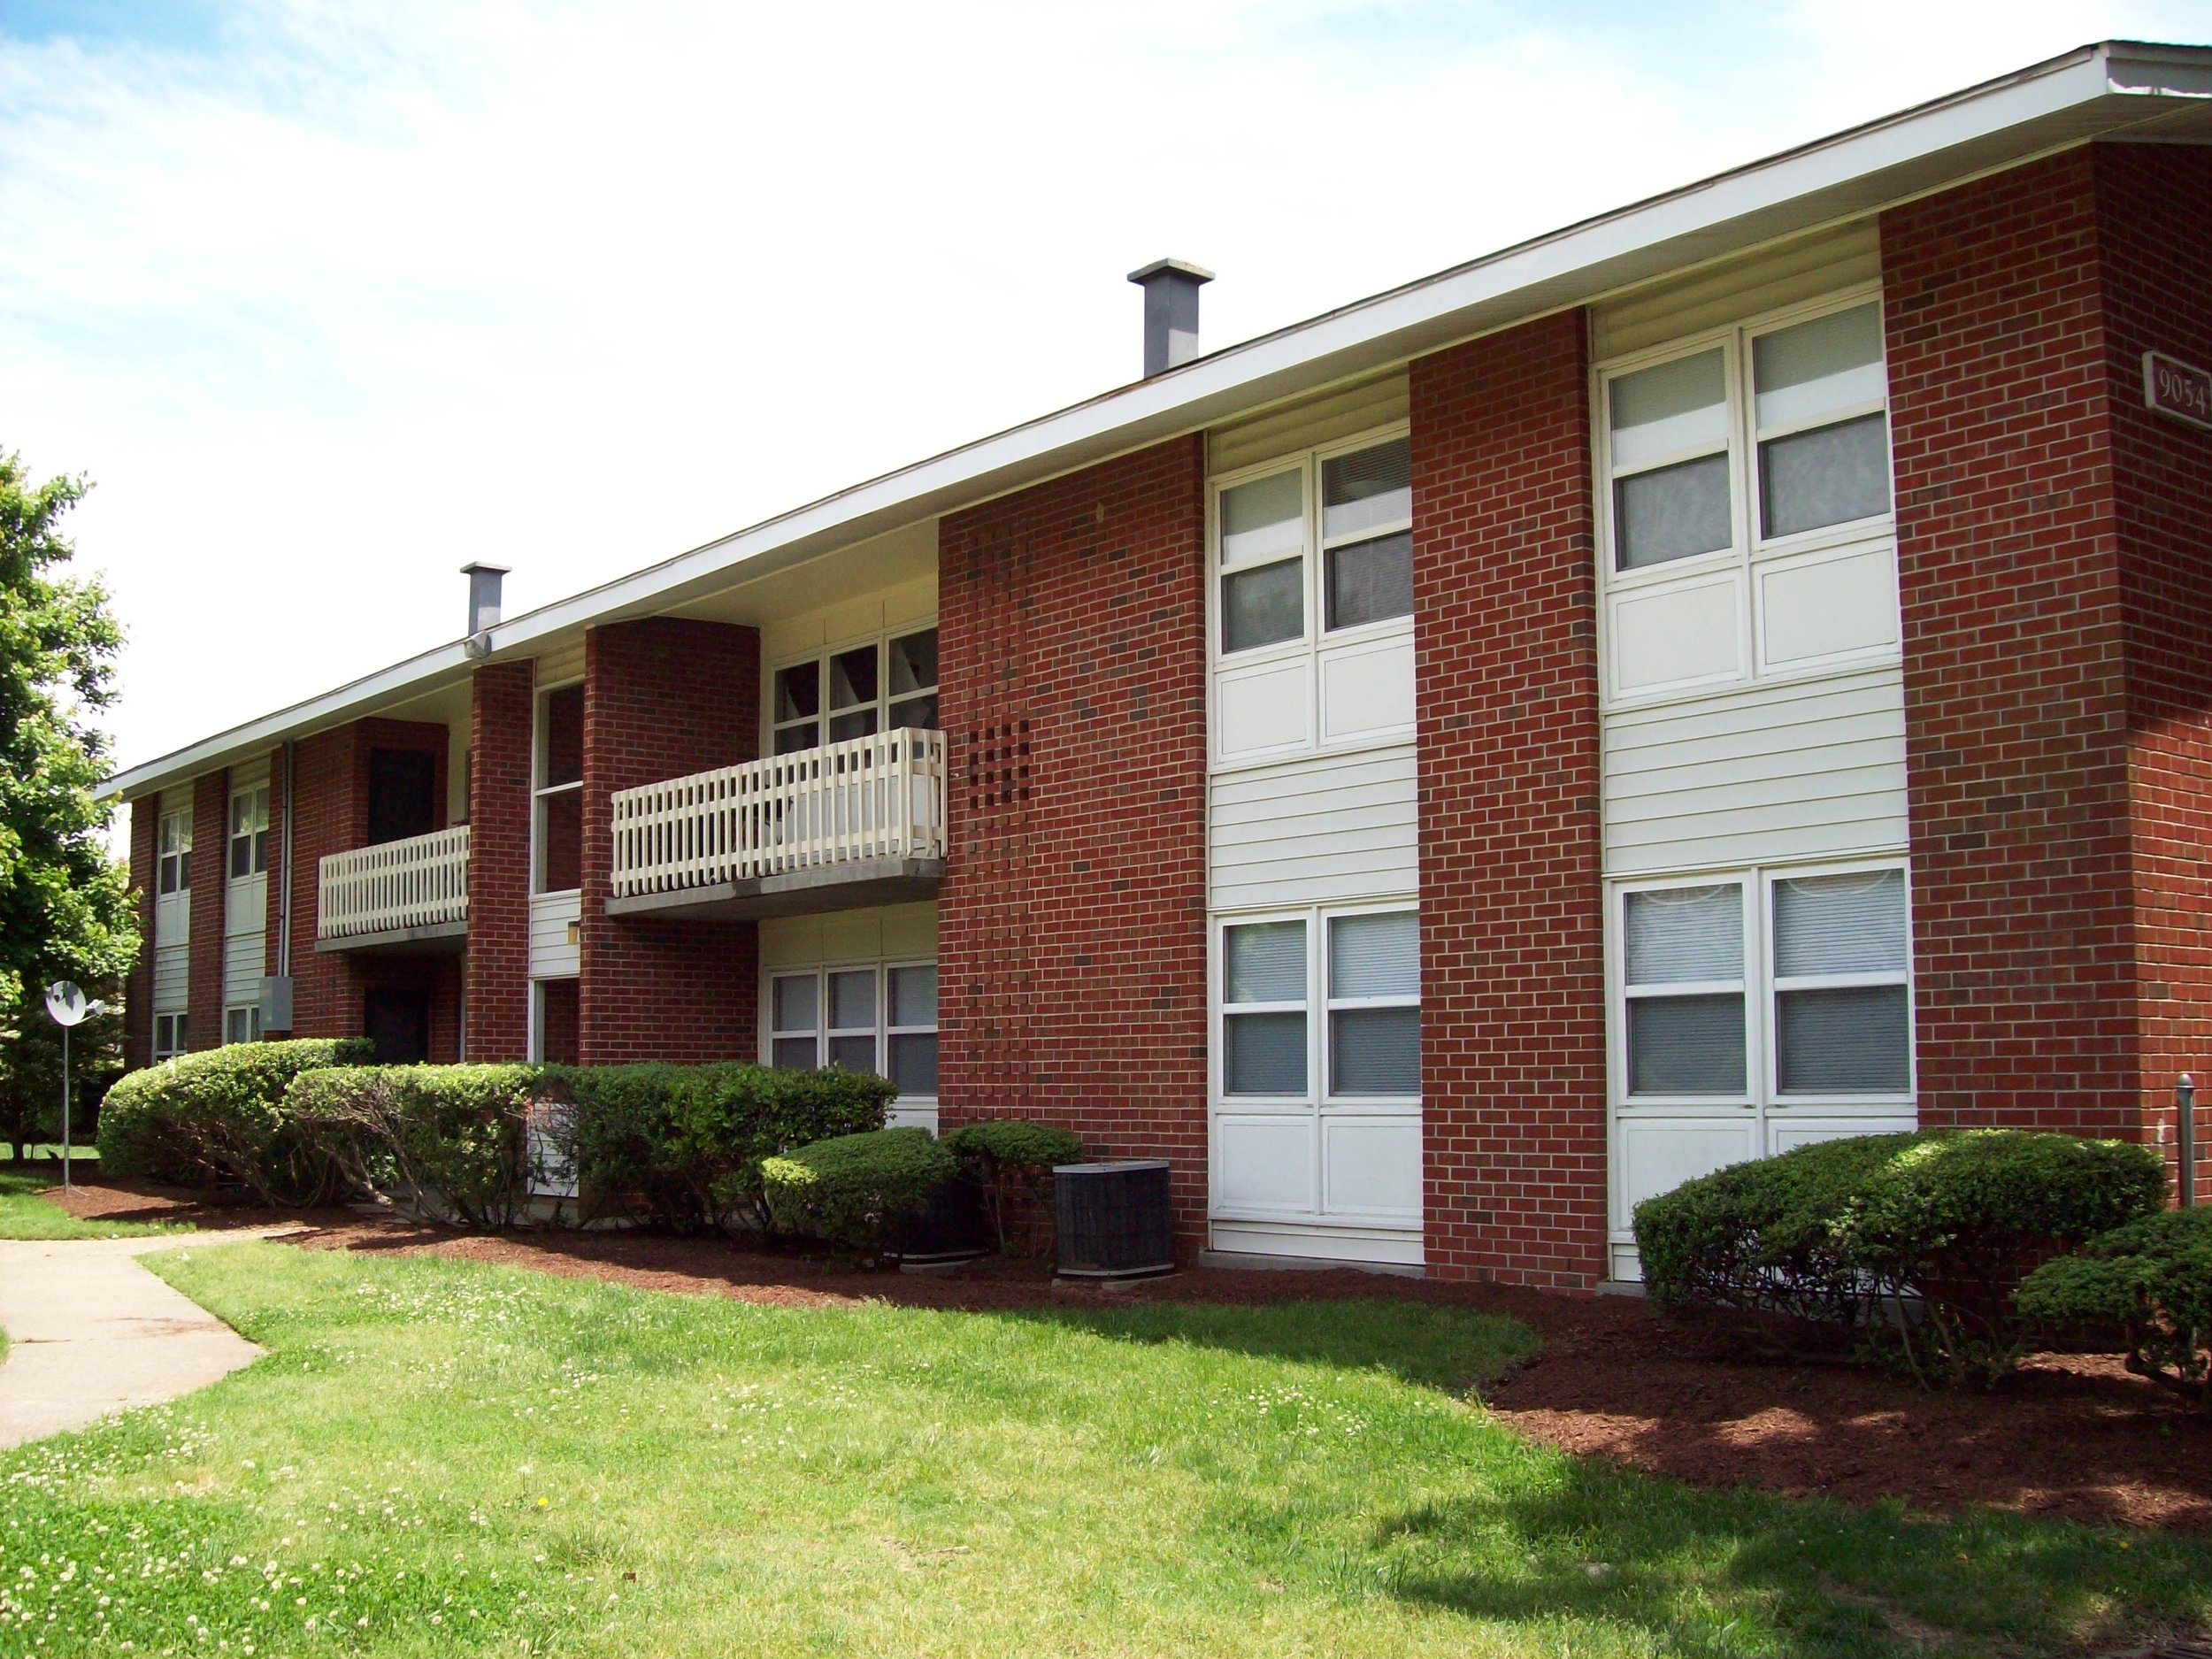 gates of west bay - 272 West Bay Ave #101, Norfolk, VA 23503Built-in: 1960 | Units: 202Gates of West Bay is located right at the entrance to Chamber's Field and Naval Station Norfolk, the largest Naval station in the world. The property has excellent access to I-64 that affords residents the ability to get to Virginia Beach, downtown Norfolk, Norfolk International Airport and Newport News with ease. We aim to renovate over half of the units by installing new appliance packages, vinyl plank flooring, and replacing cabinets and painting walls.